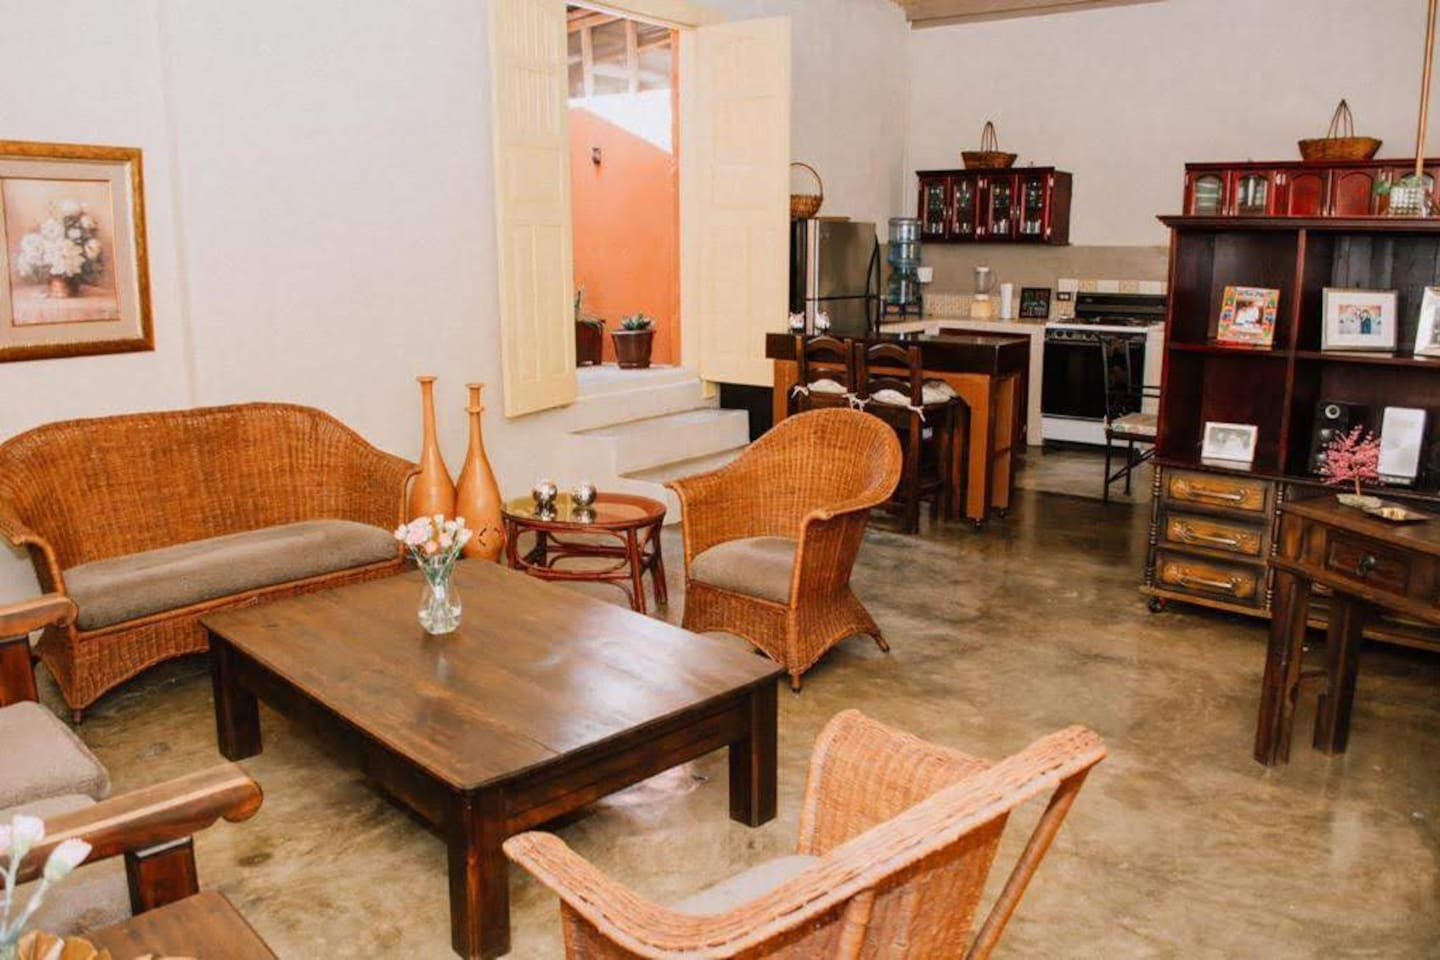 The living room is a common area. A good place to relax or plan the next stage of your trip.